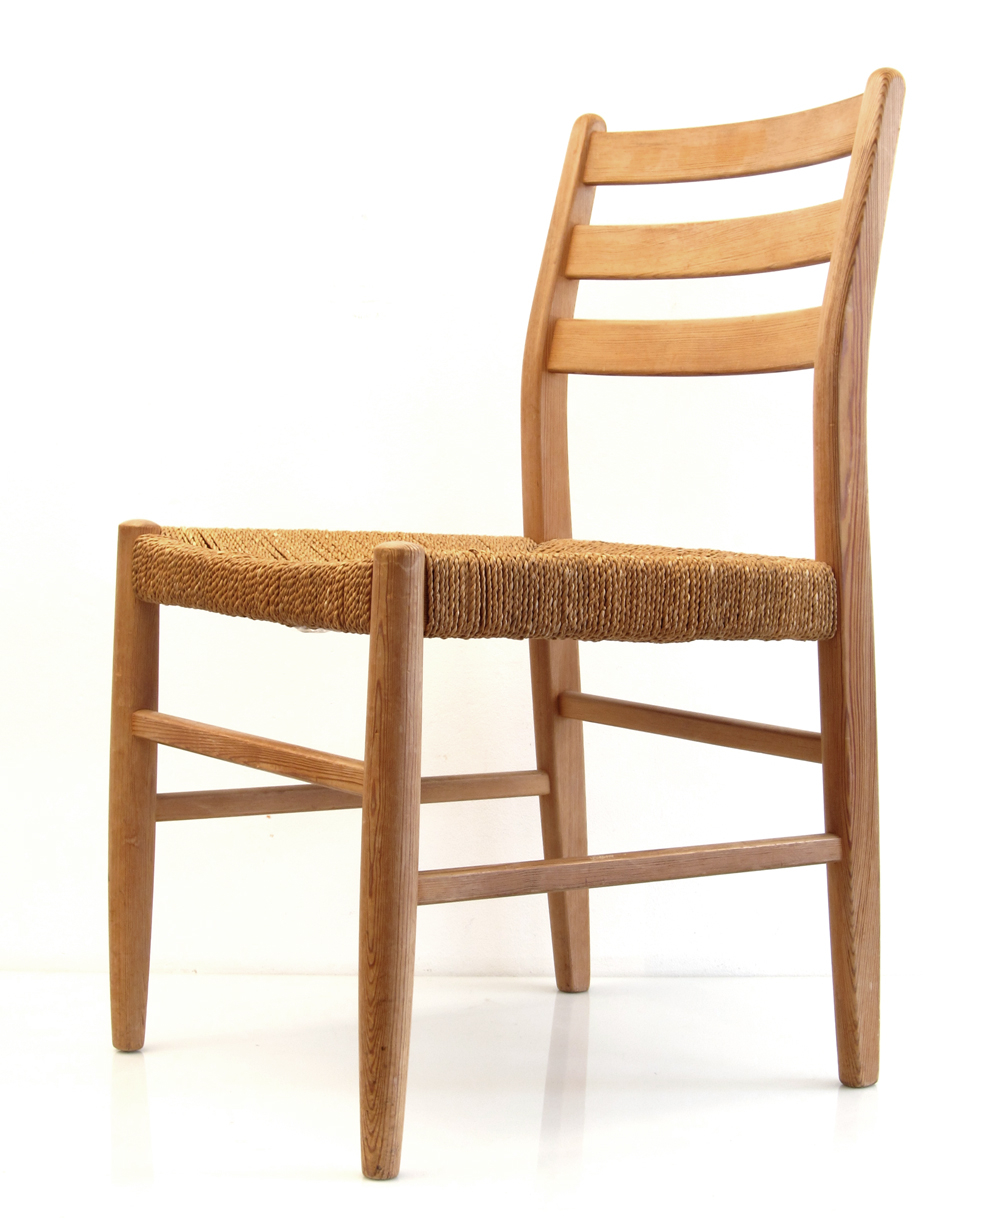 Scandinavian Wooden Retro Chair